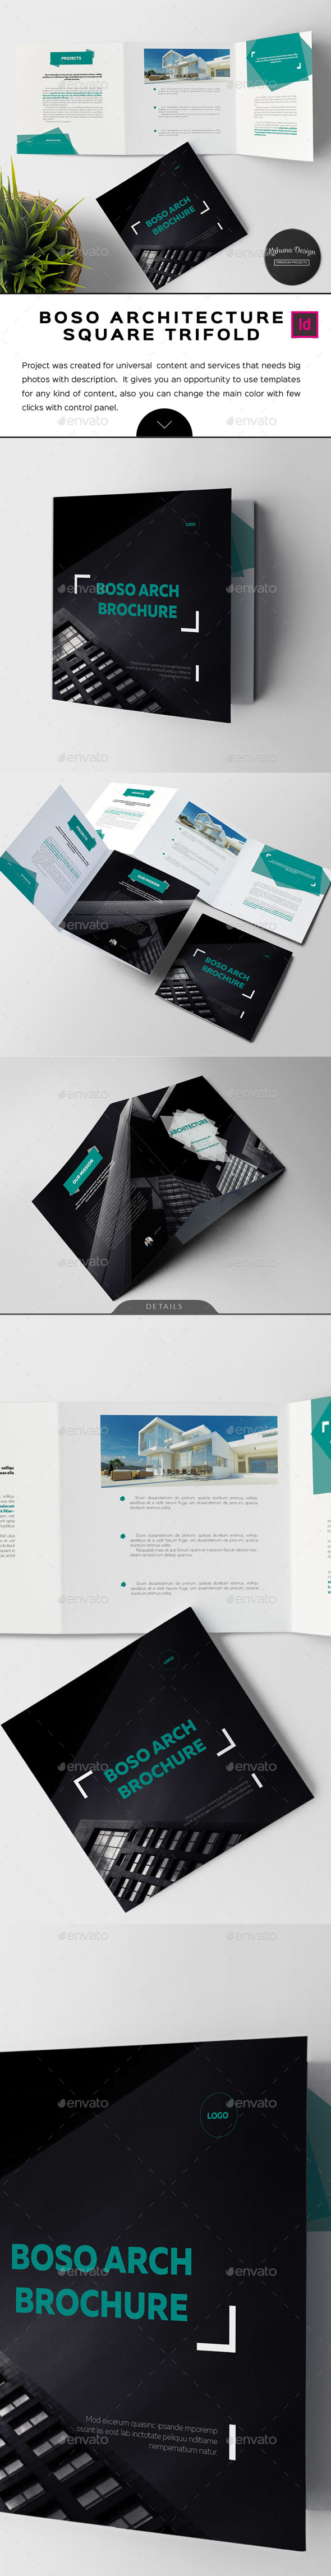 Boso Square Architecture Trifold Brochure - Corporate Brochures